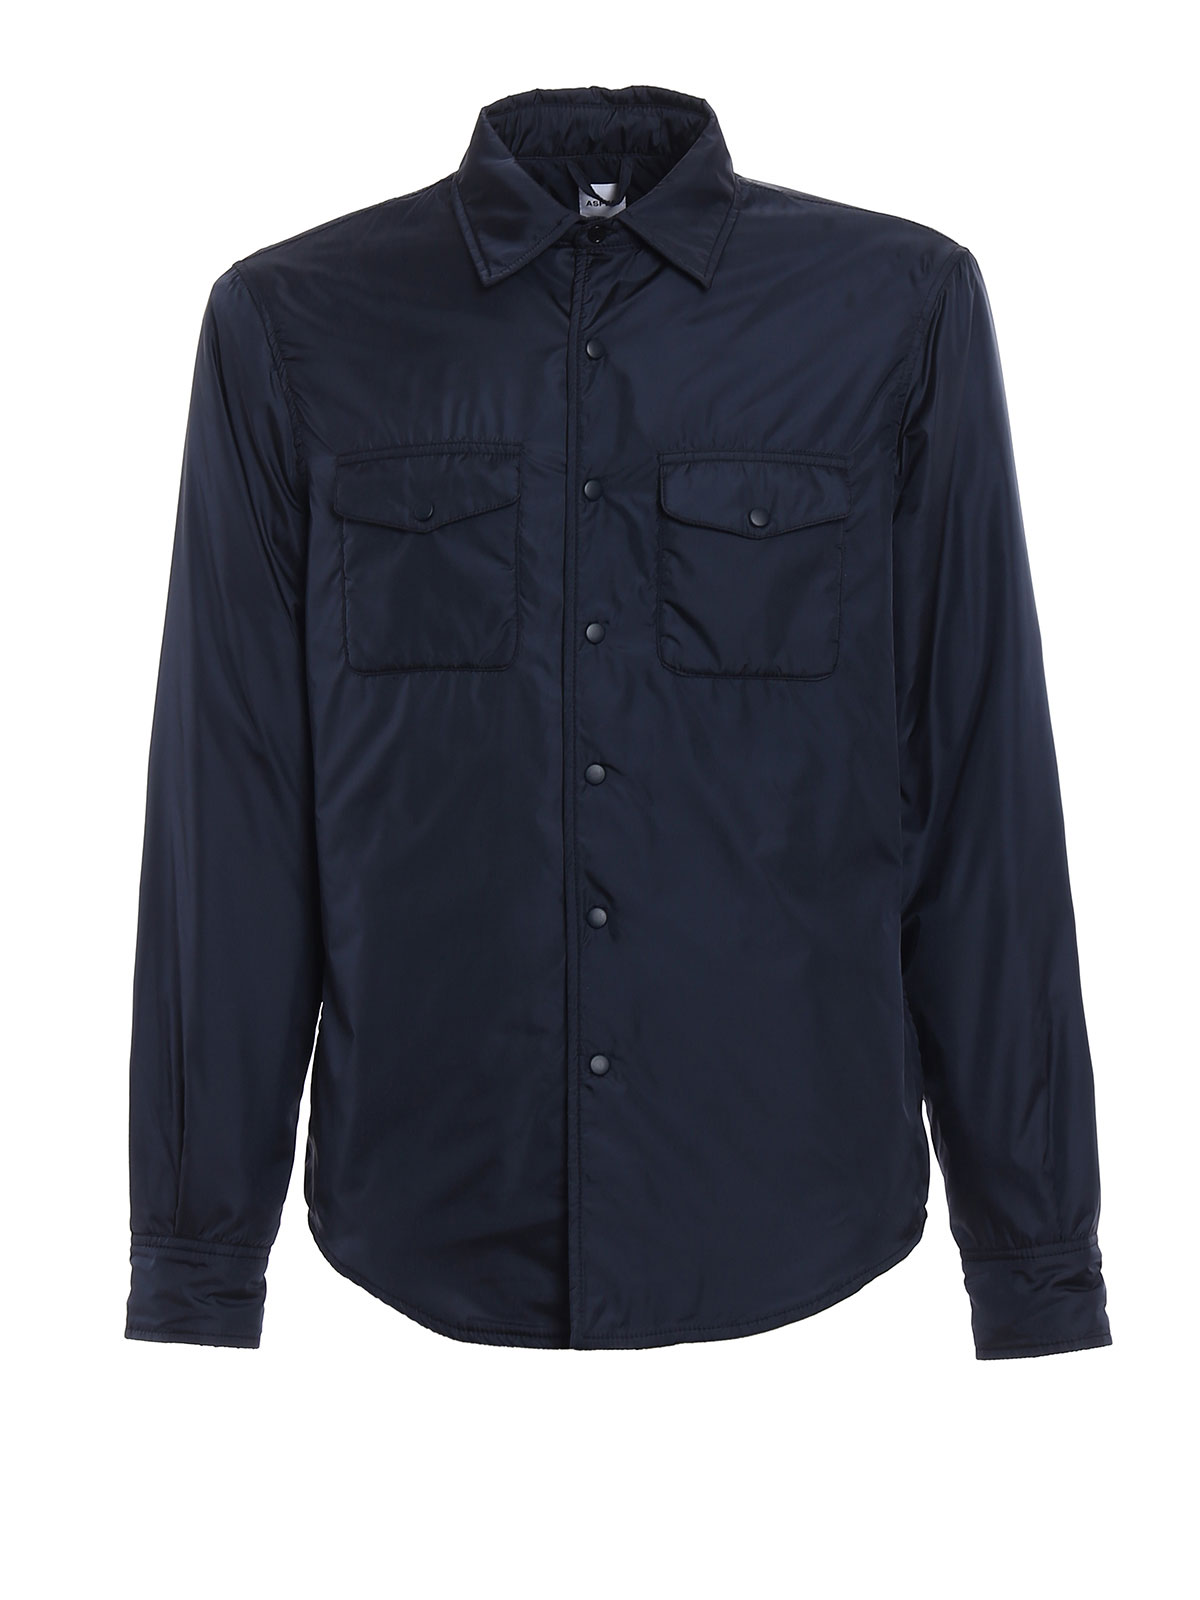 Picture of ASPESI | Men's Shirt-Inspired Jacket